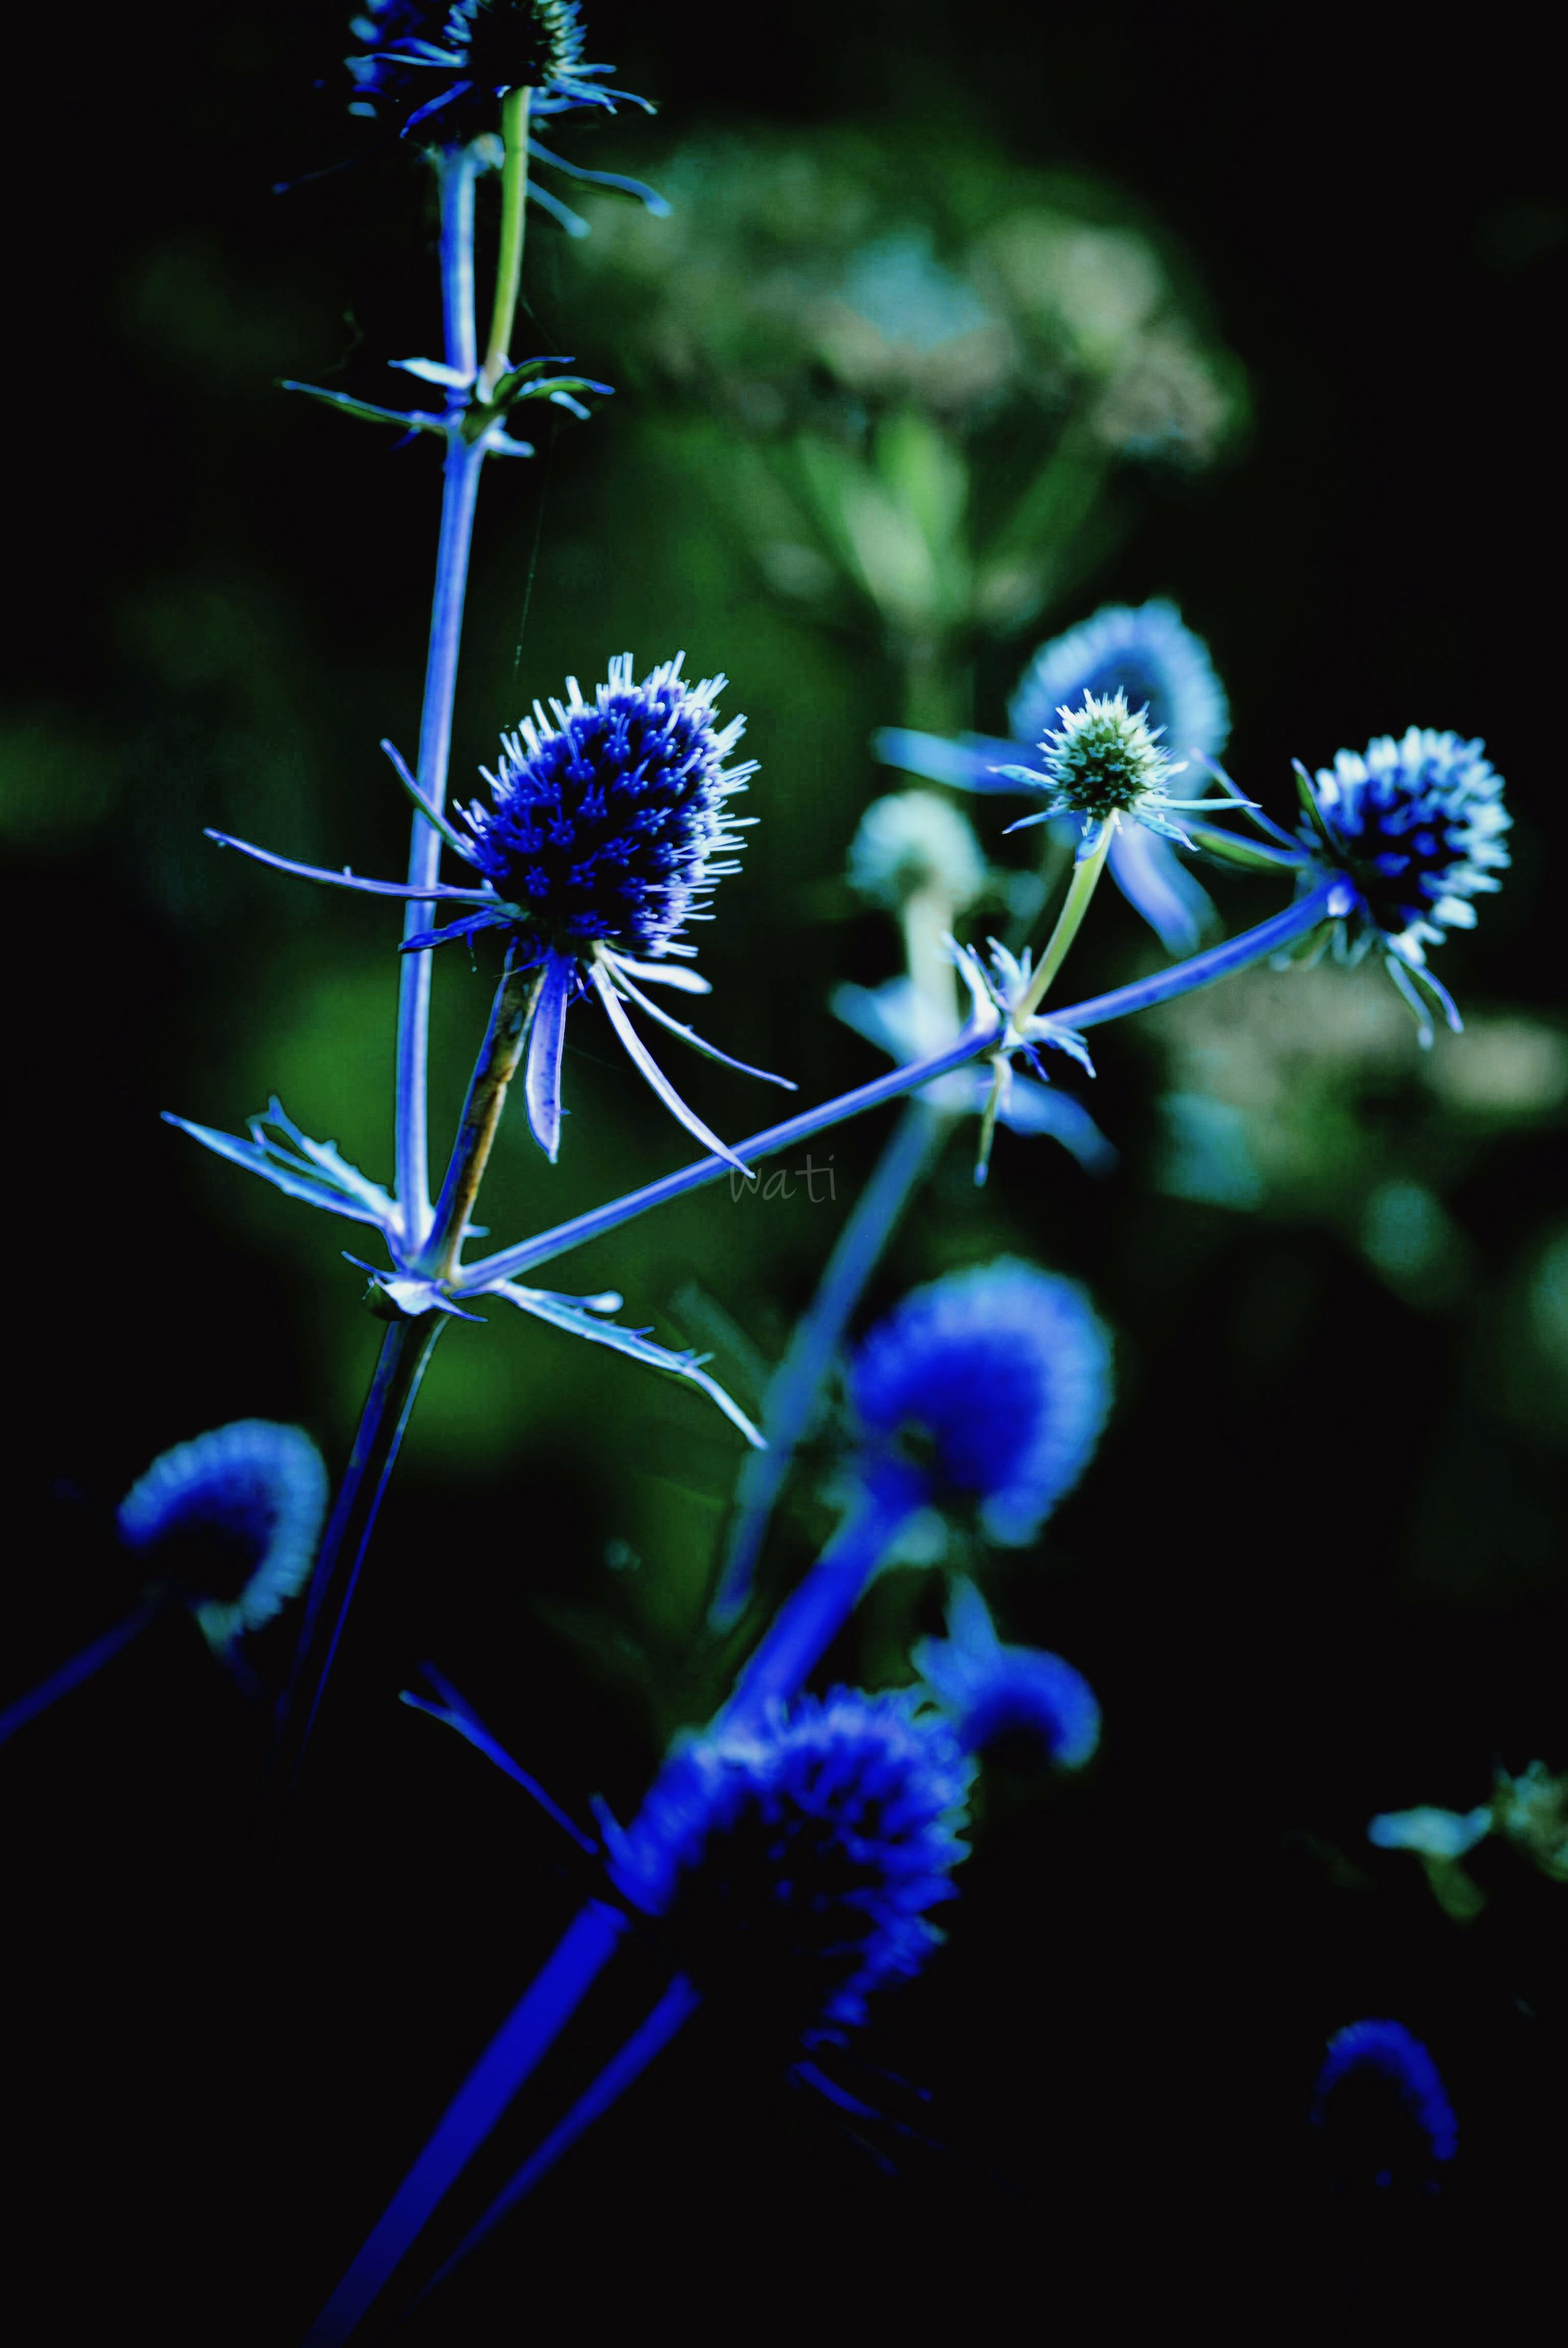 flower, growth, freshness, fragility, purple, close-up, focus on foreground, plant, nature, beauty in nature, stem, selective focus, outdoors, blooming, botany, blue, day, no people, leaf, in bloom